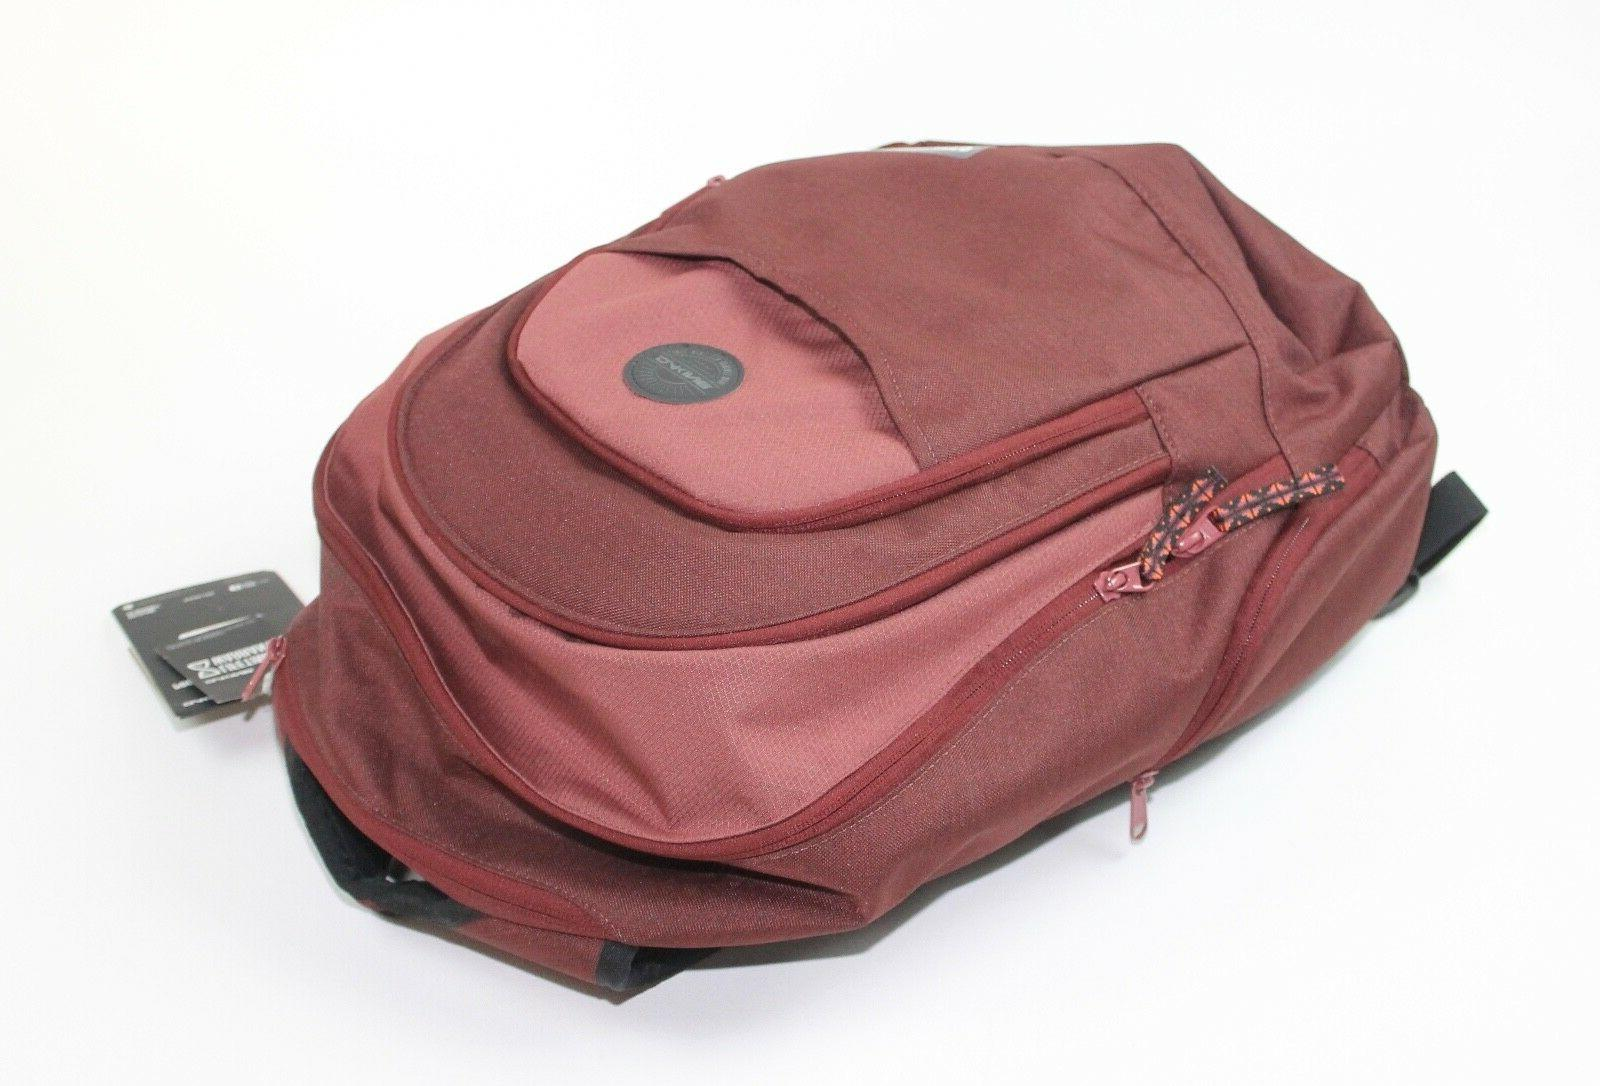 Dakine Women's Burntrose Red Bag